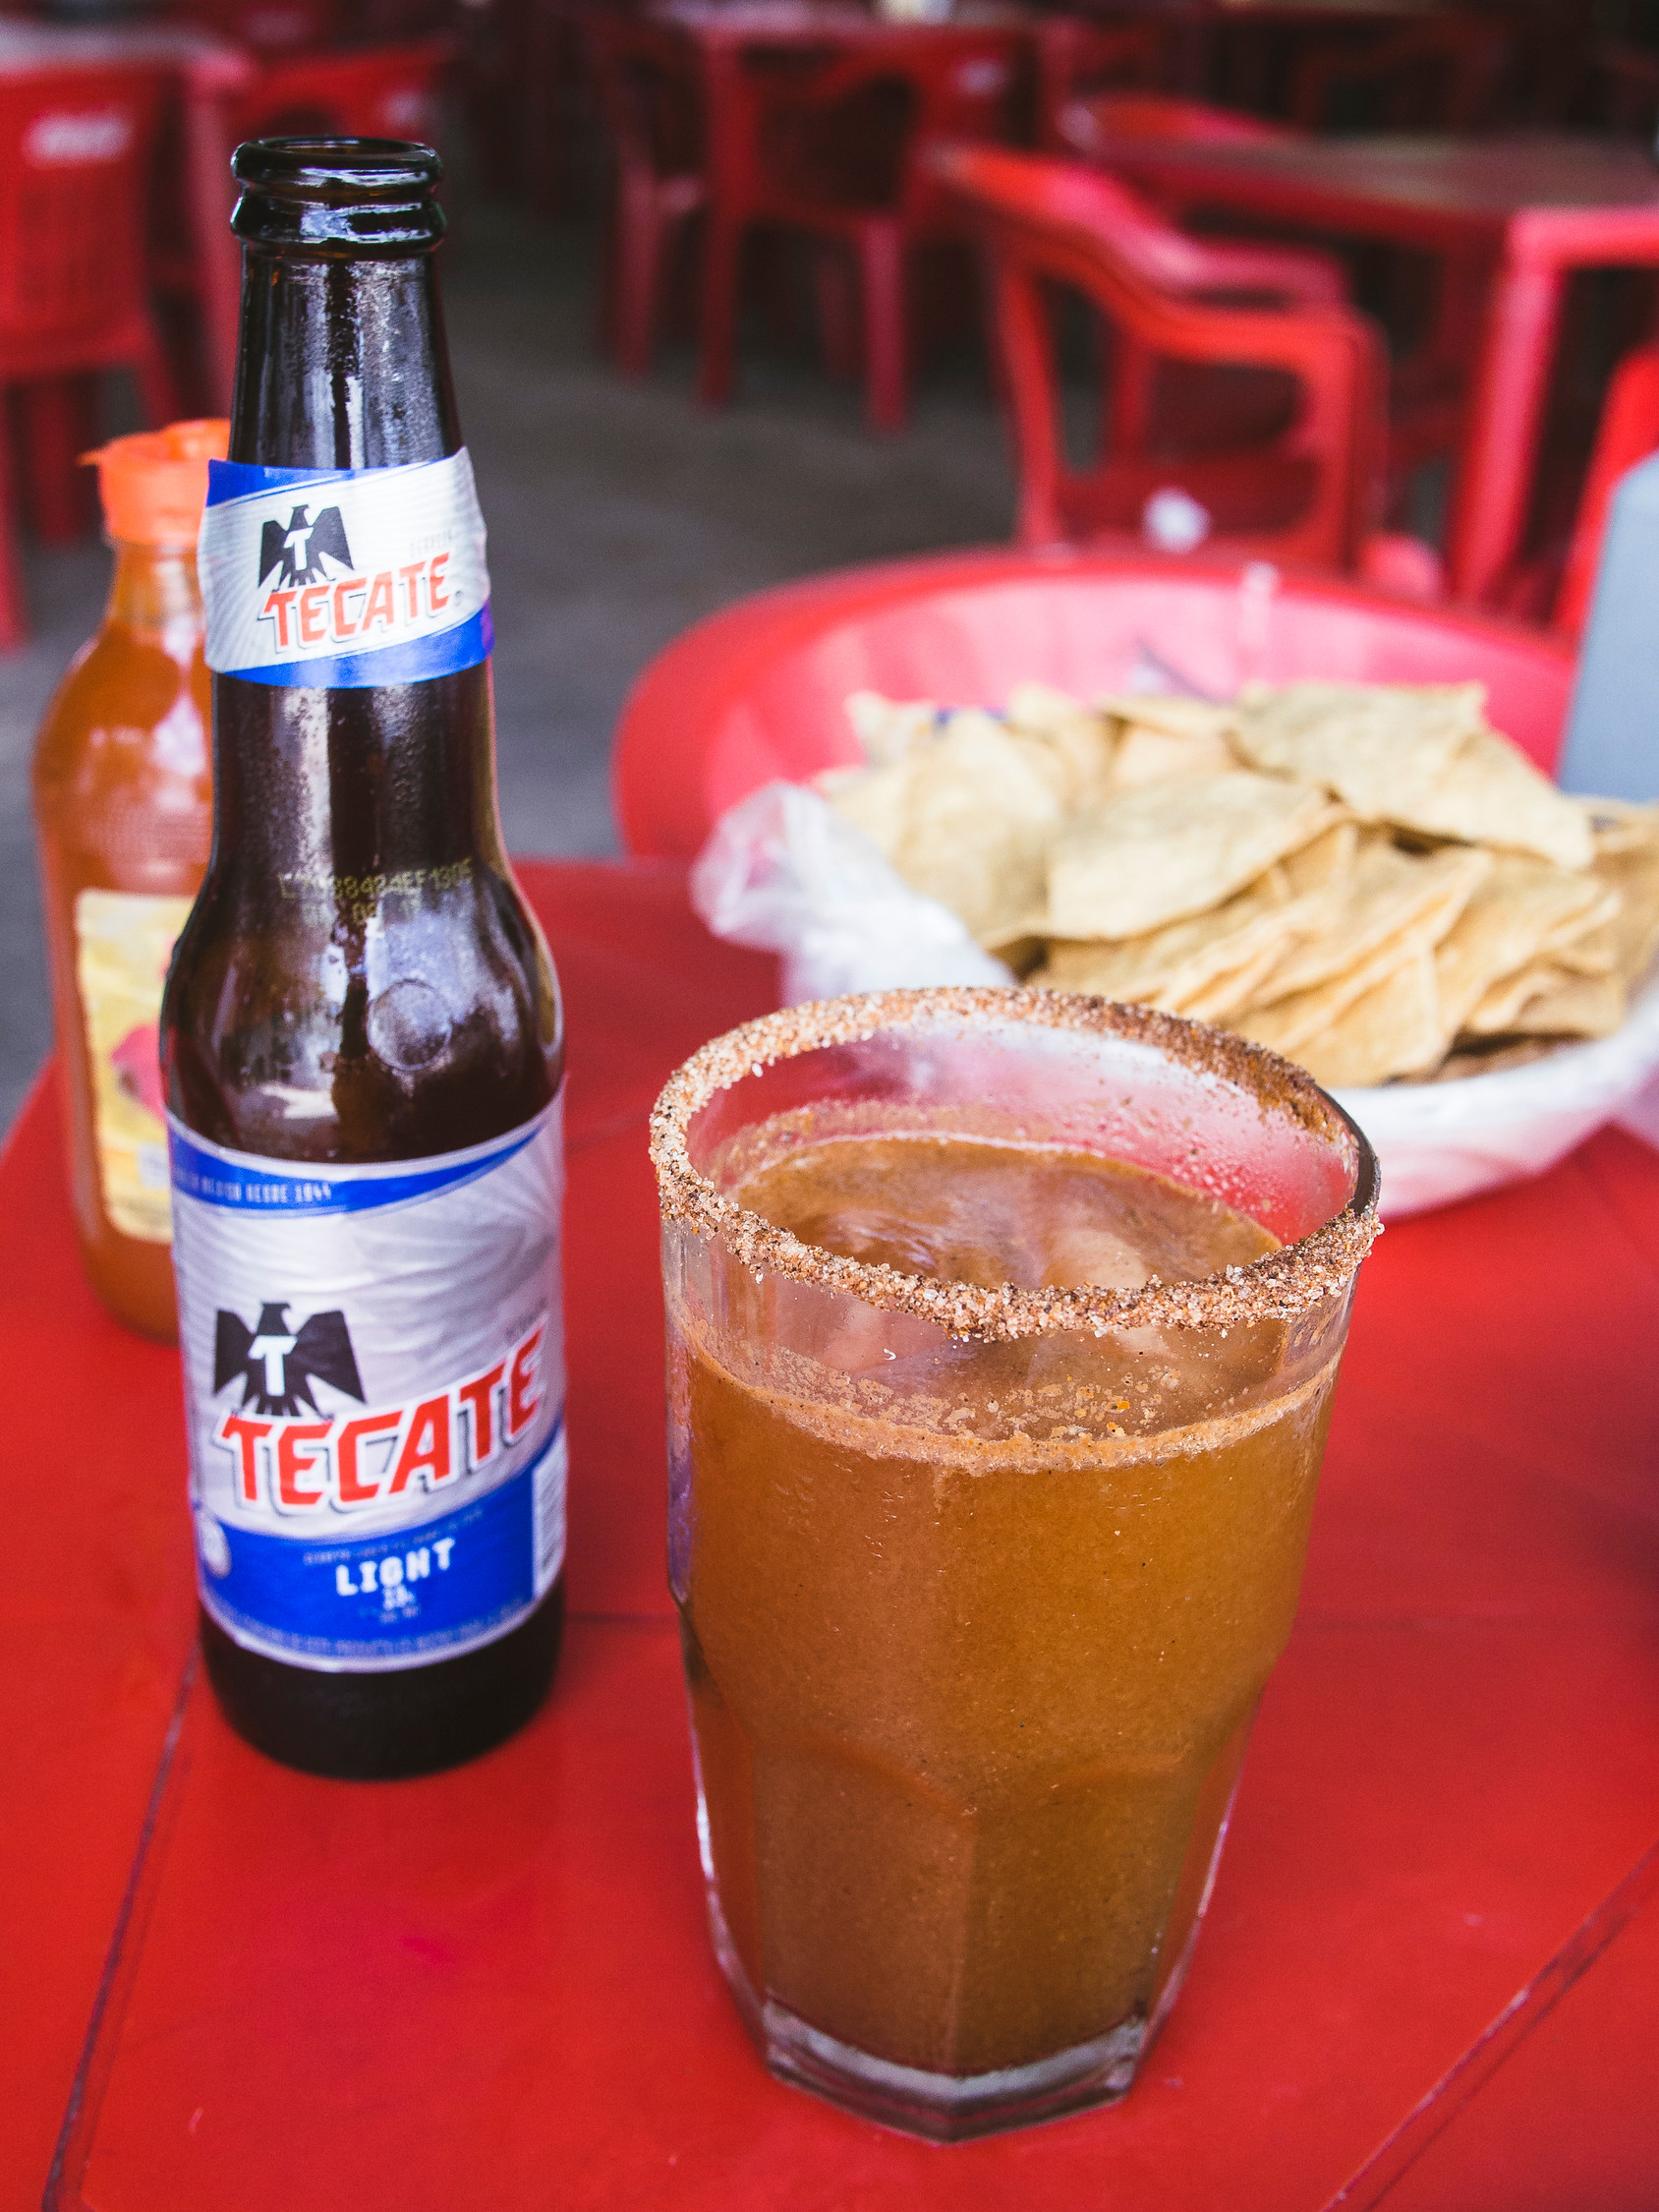 Michelada beer cocktail from Mexico with bottle of Mexican beer beside it and tortilla chips in the background.